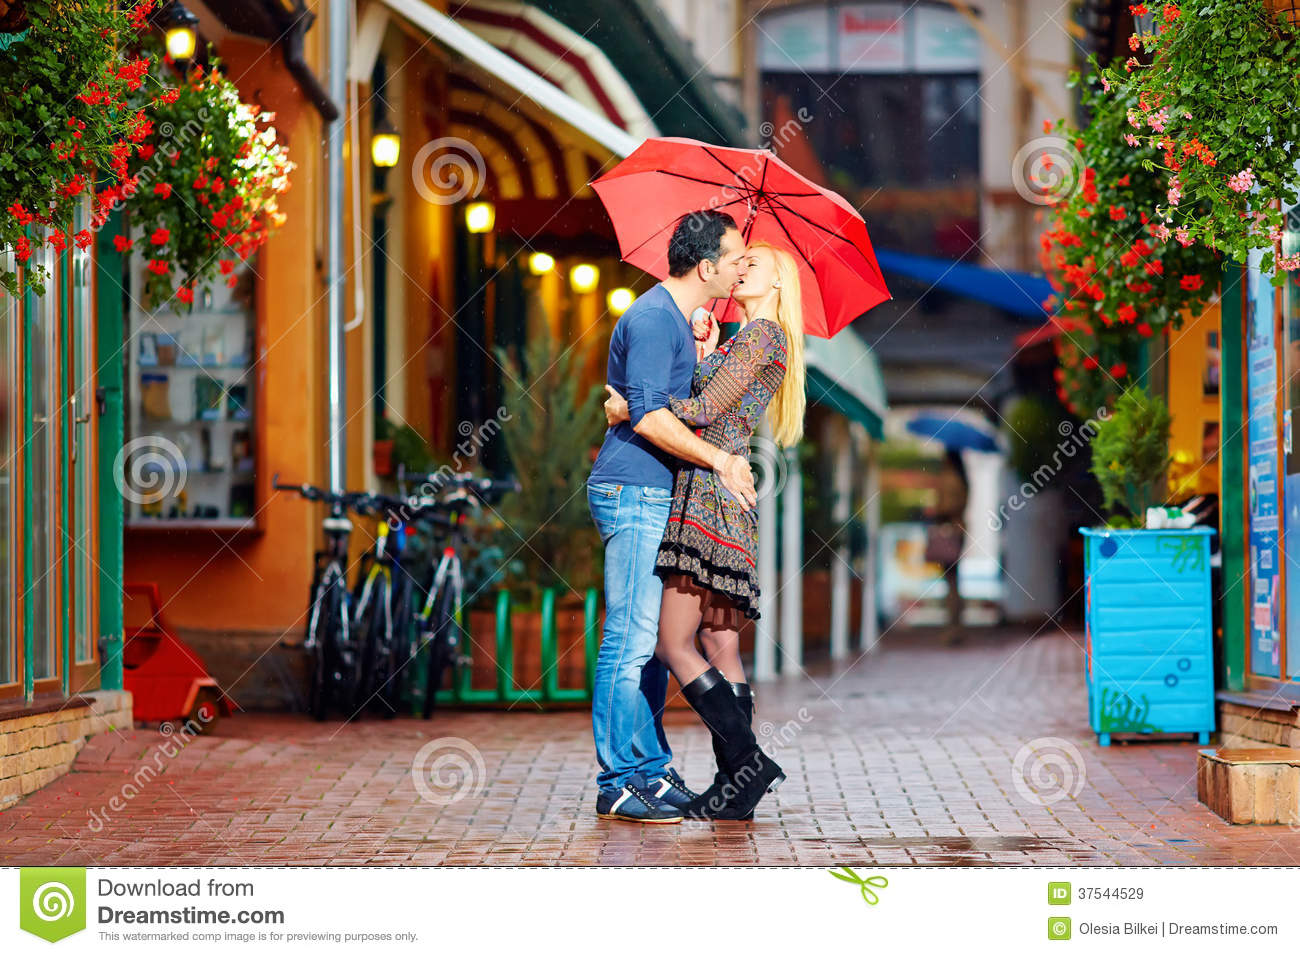 Rainy Wallpaper With Girl Happy Couple In Love Kissing On Rainy Street Royalty Free